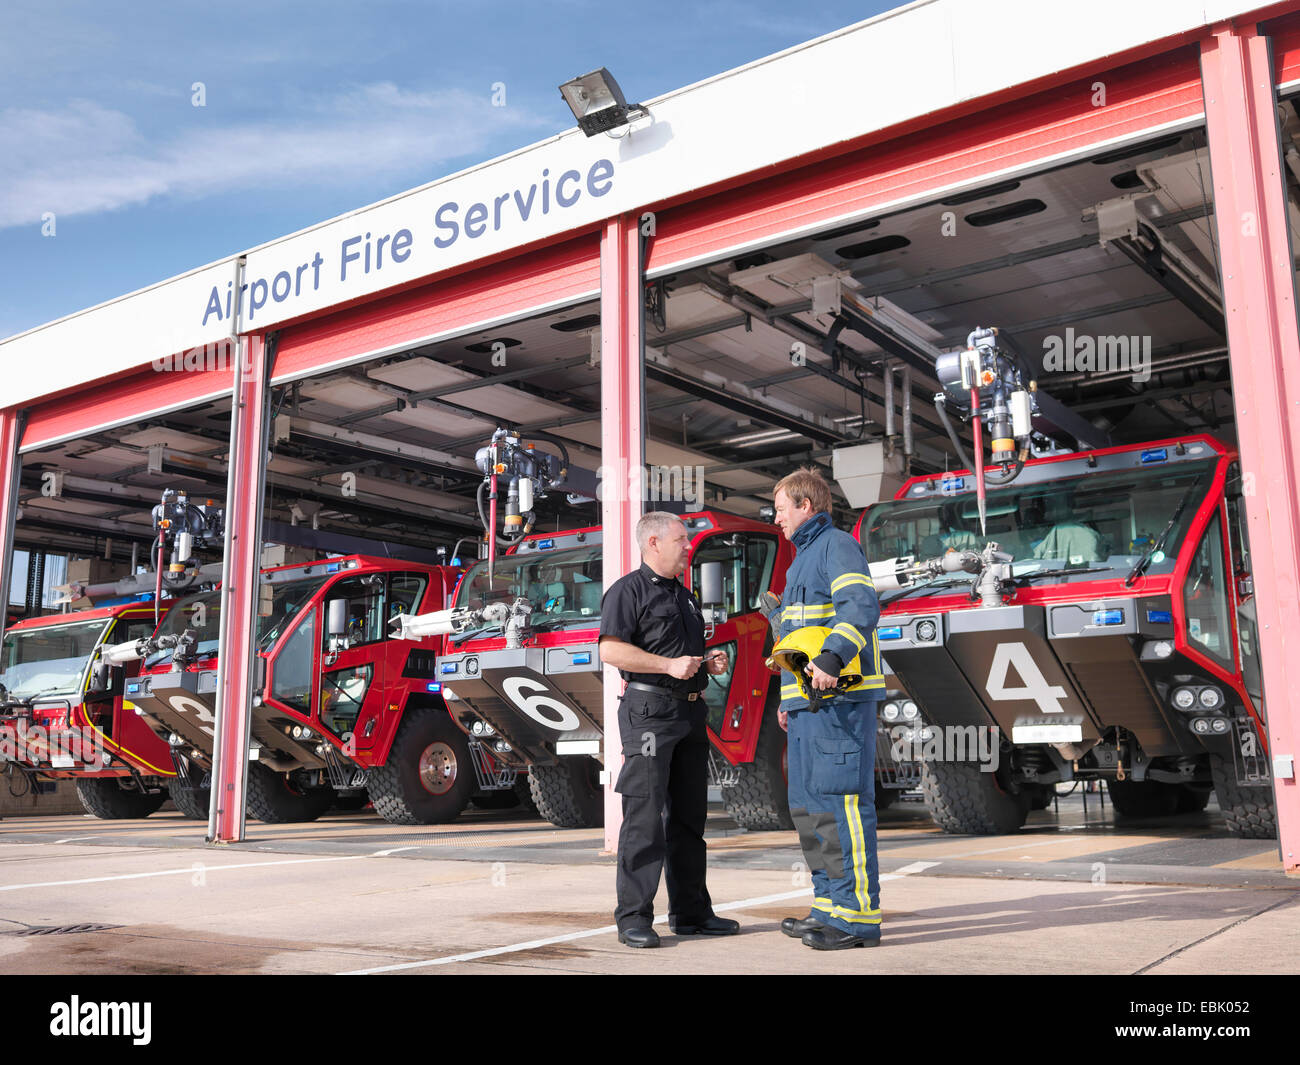 Officer and fireman in front of fire engines in airport fire station - Stock Image